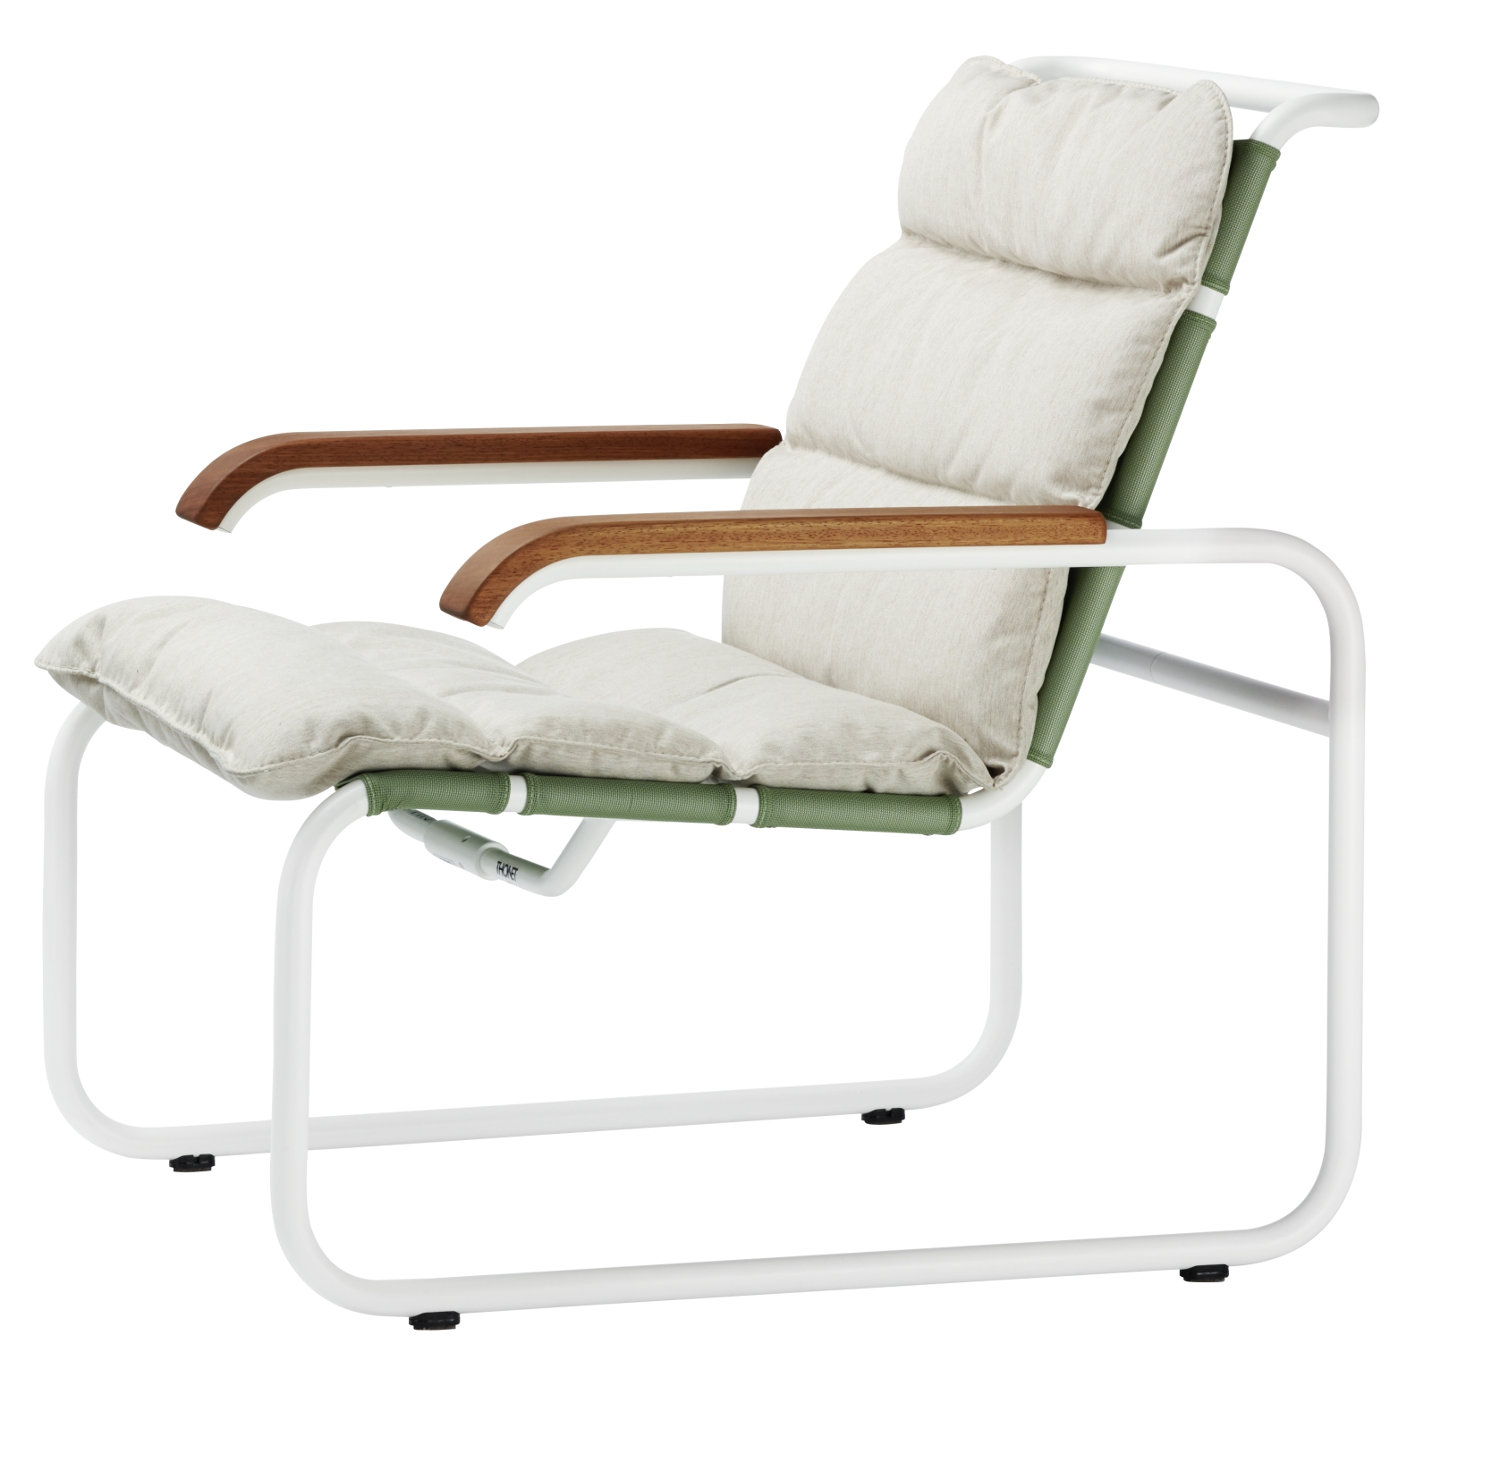 Thonet Esstische Thonet Kissenauflage Für S 35 N All Seasons Loungechair